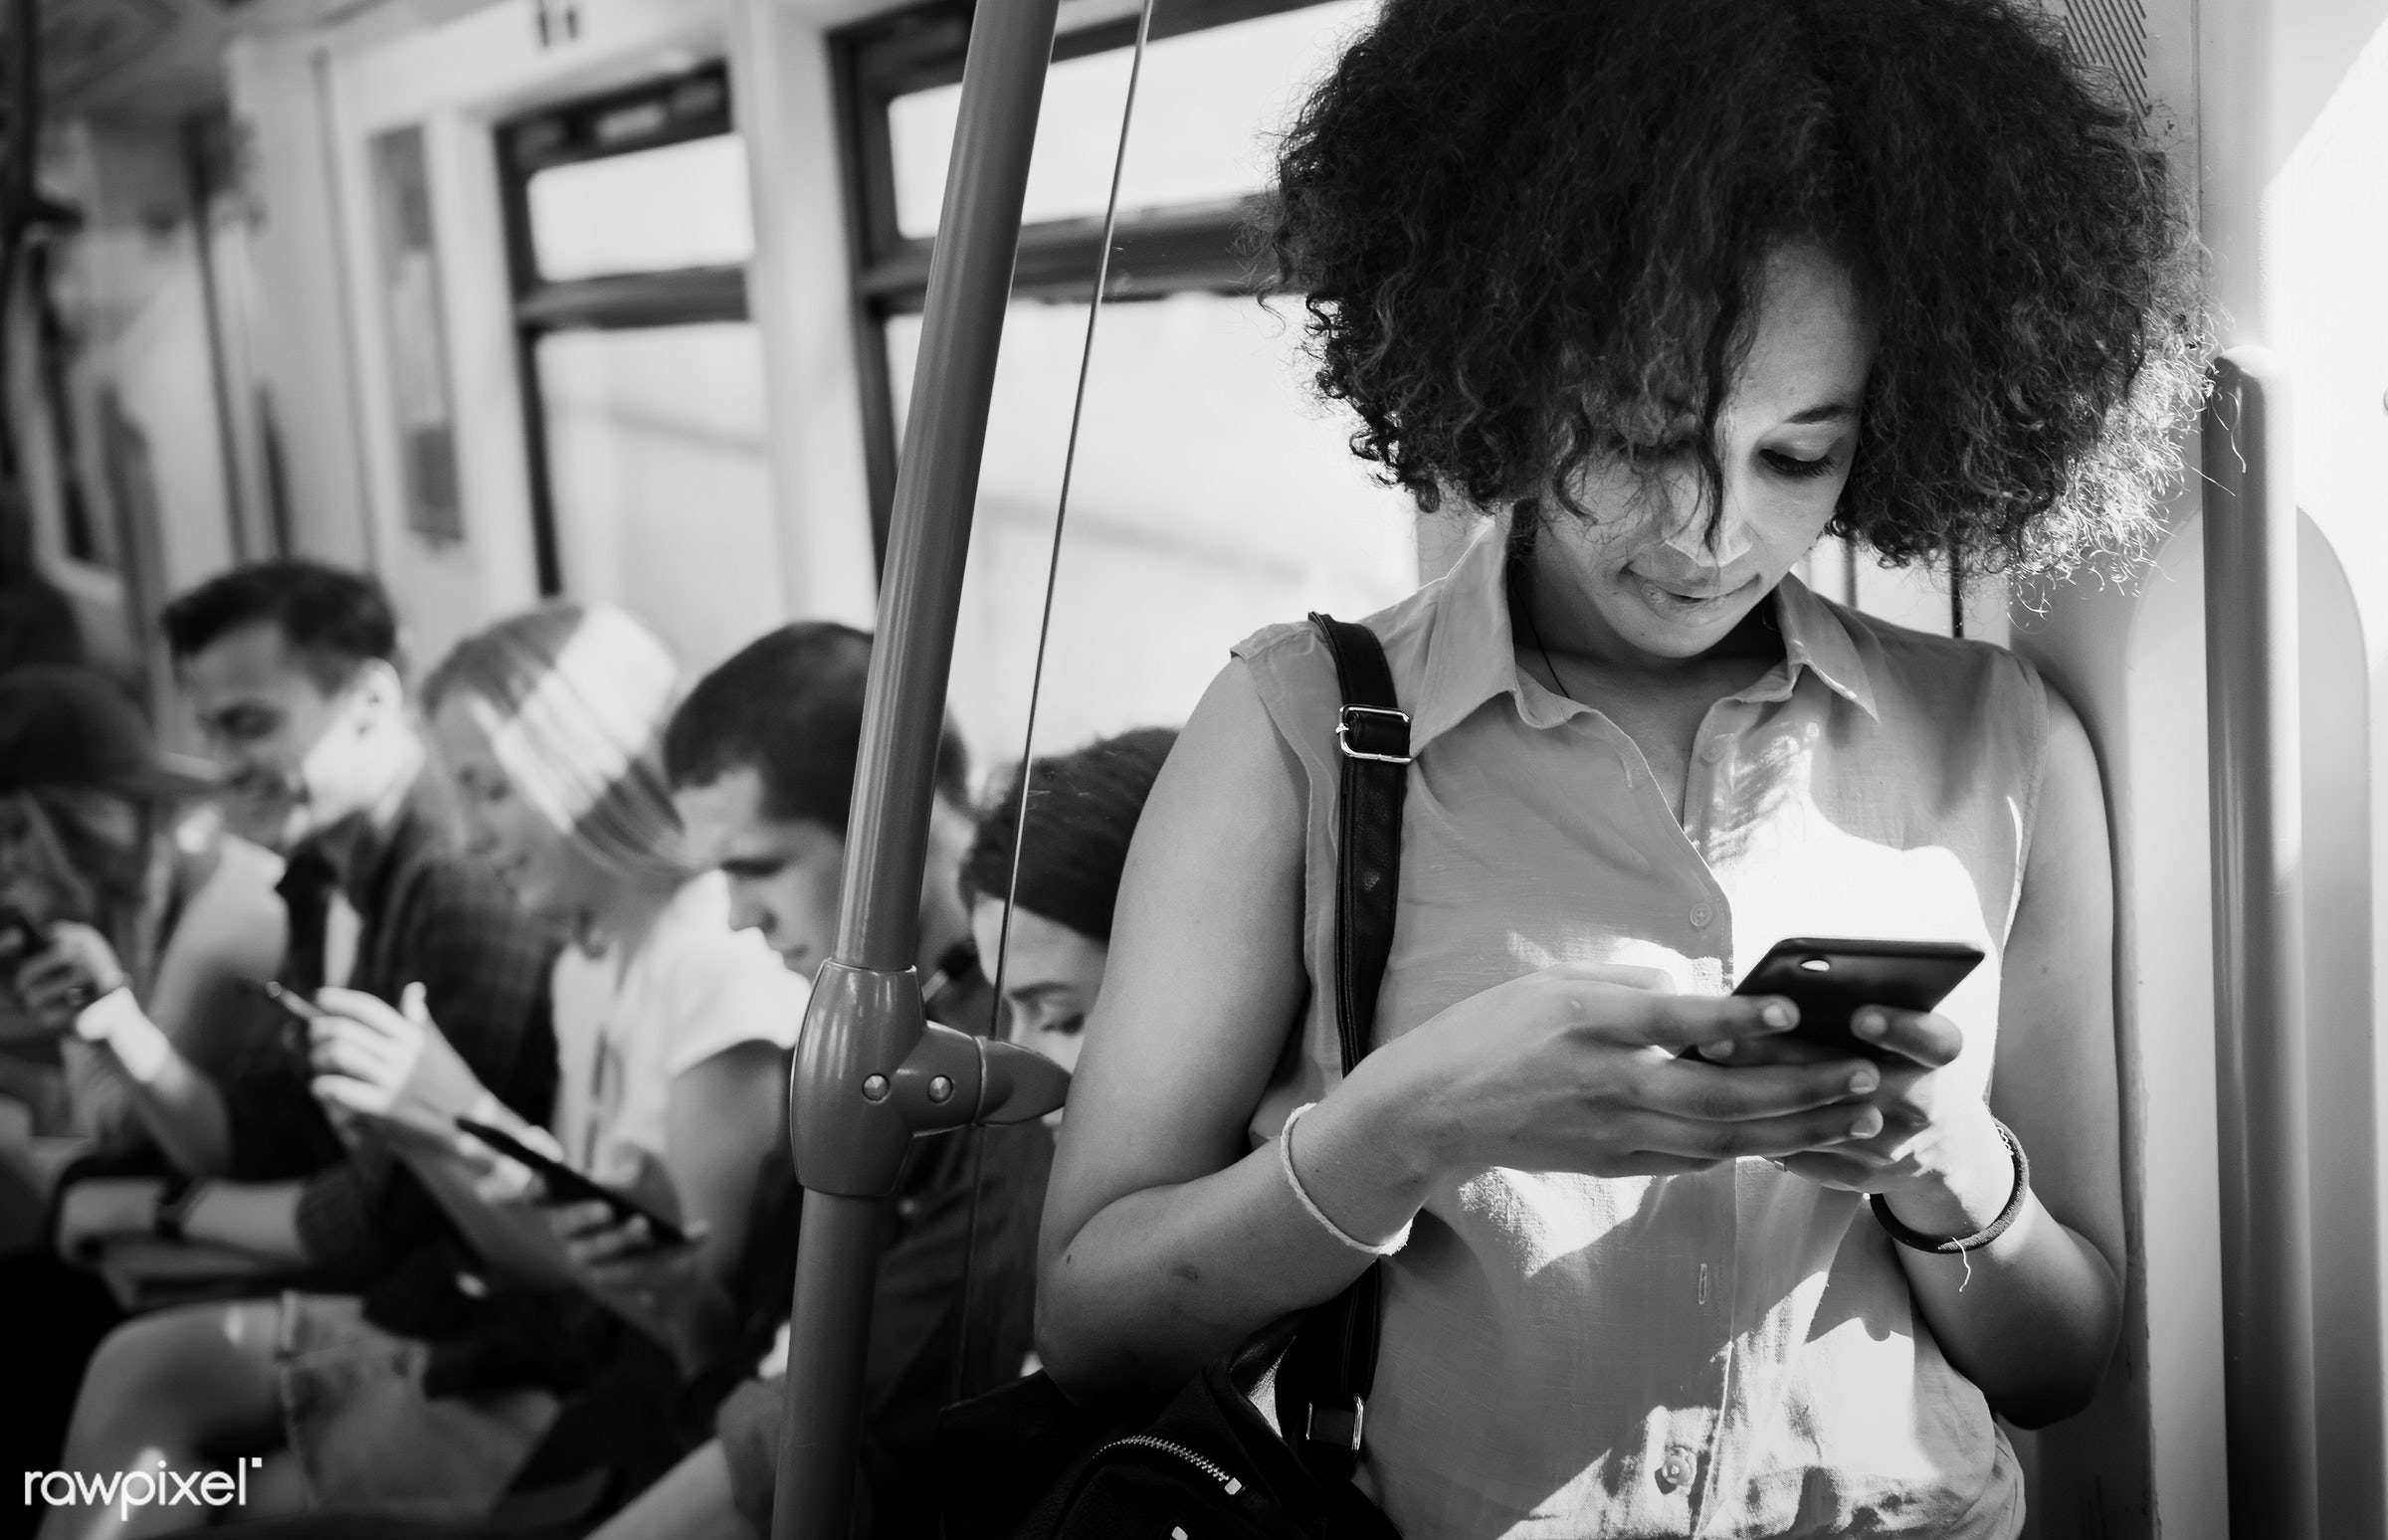 Young woman using a smartphone in a subway - digital, woman, commute, african american, happy, communication, texting, train...